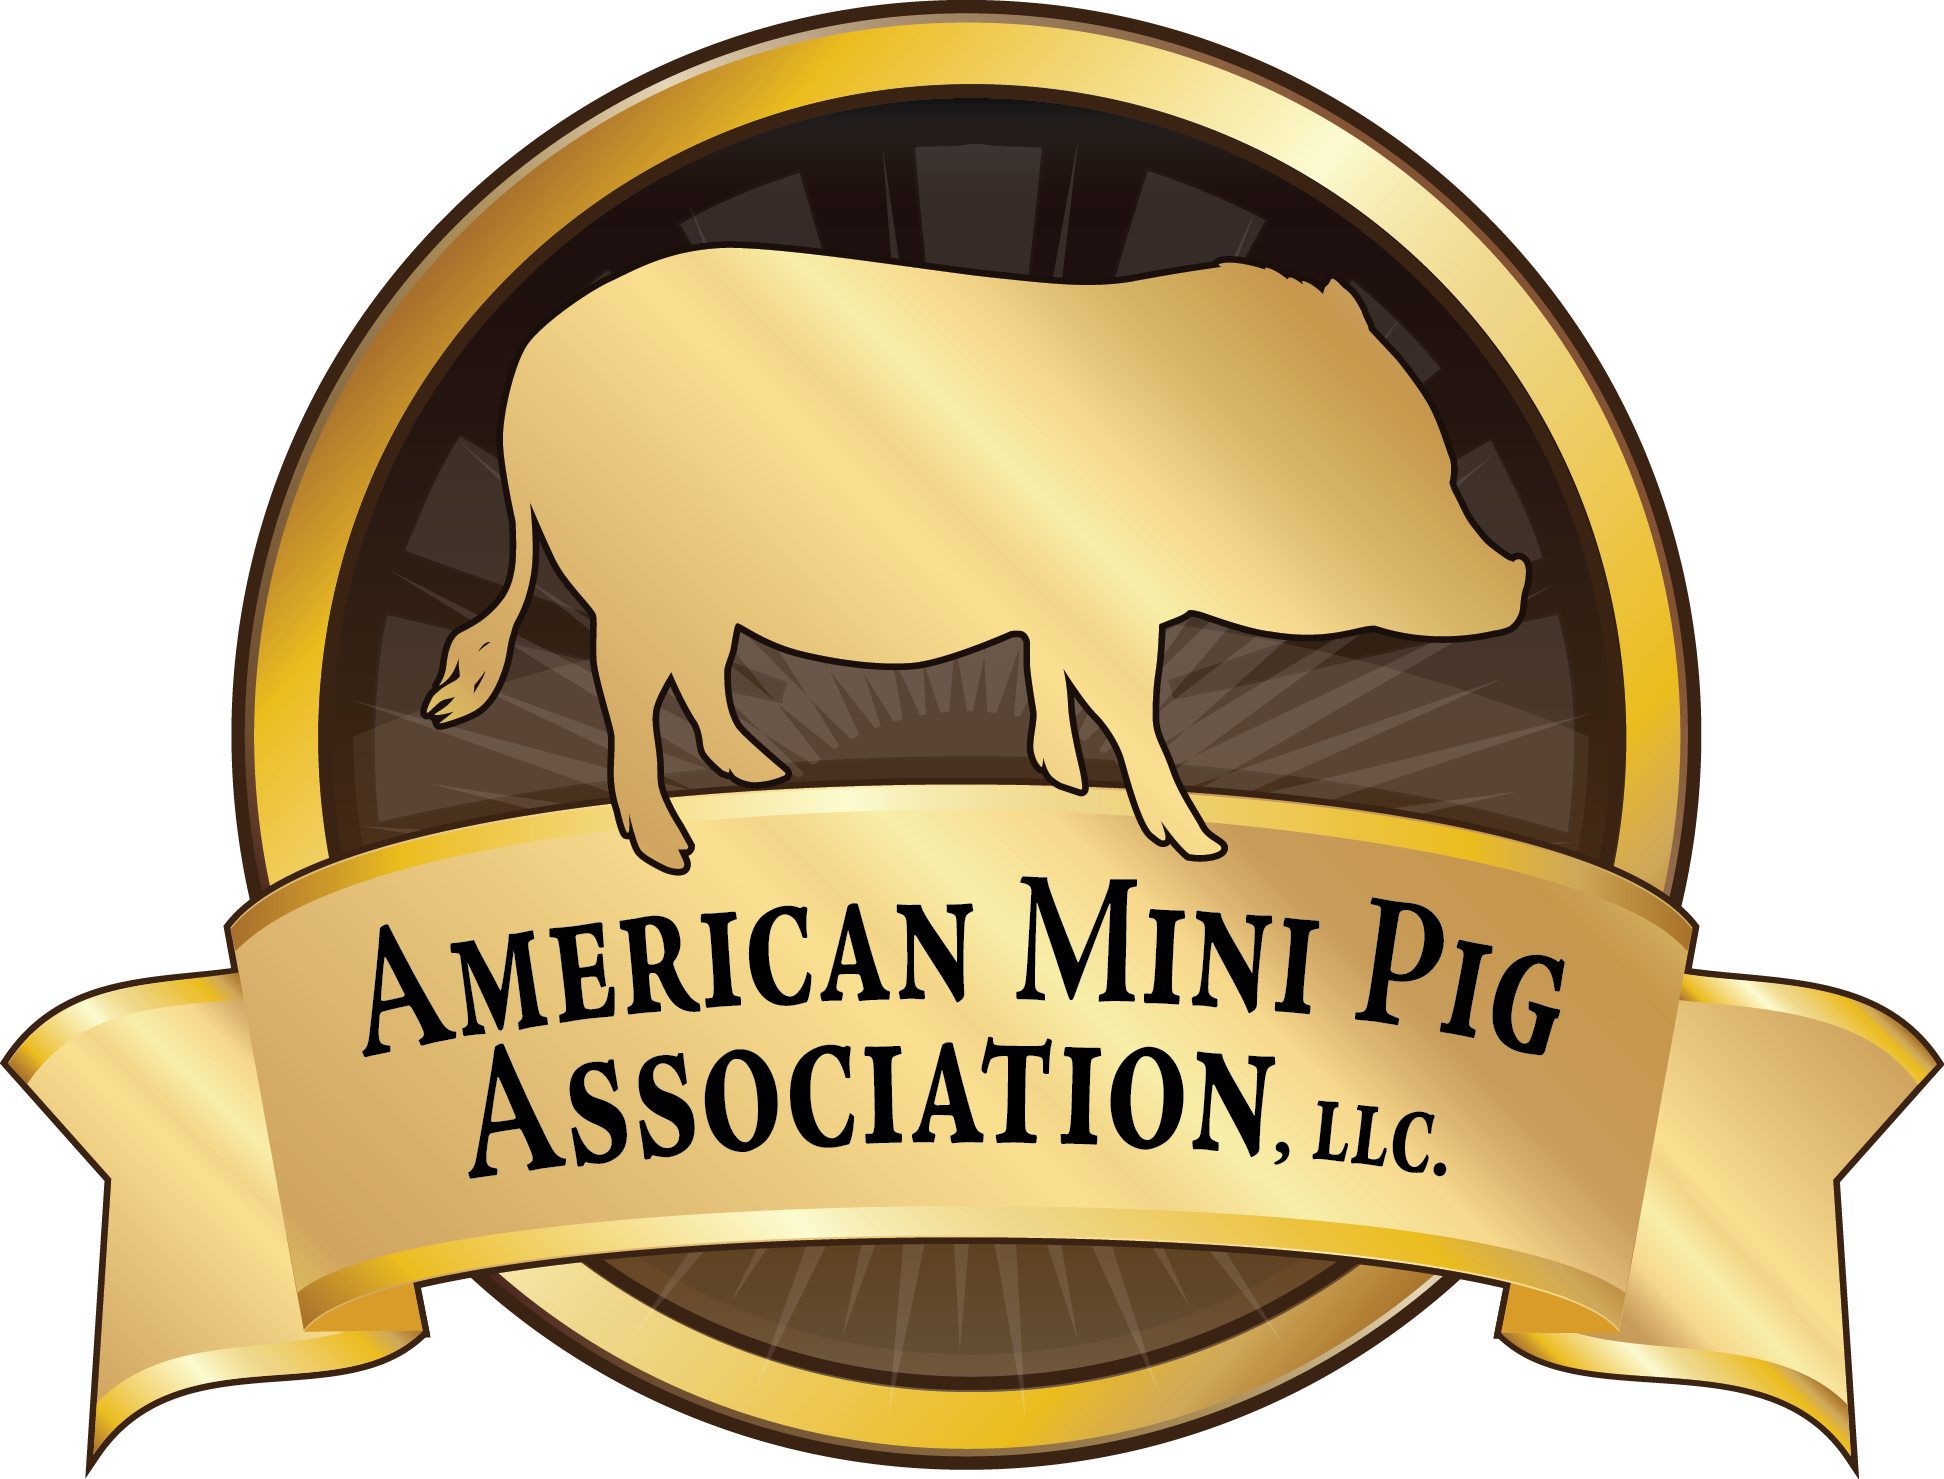 Become an American Mini Pig Association Member